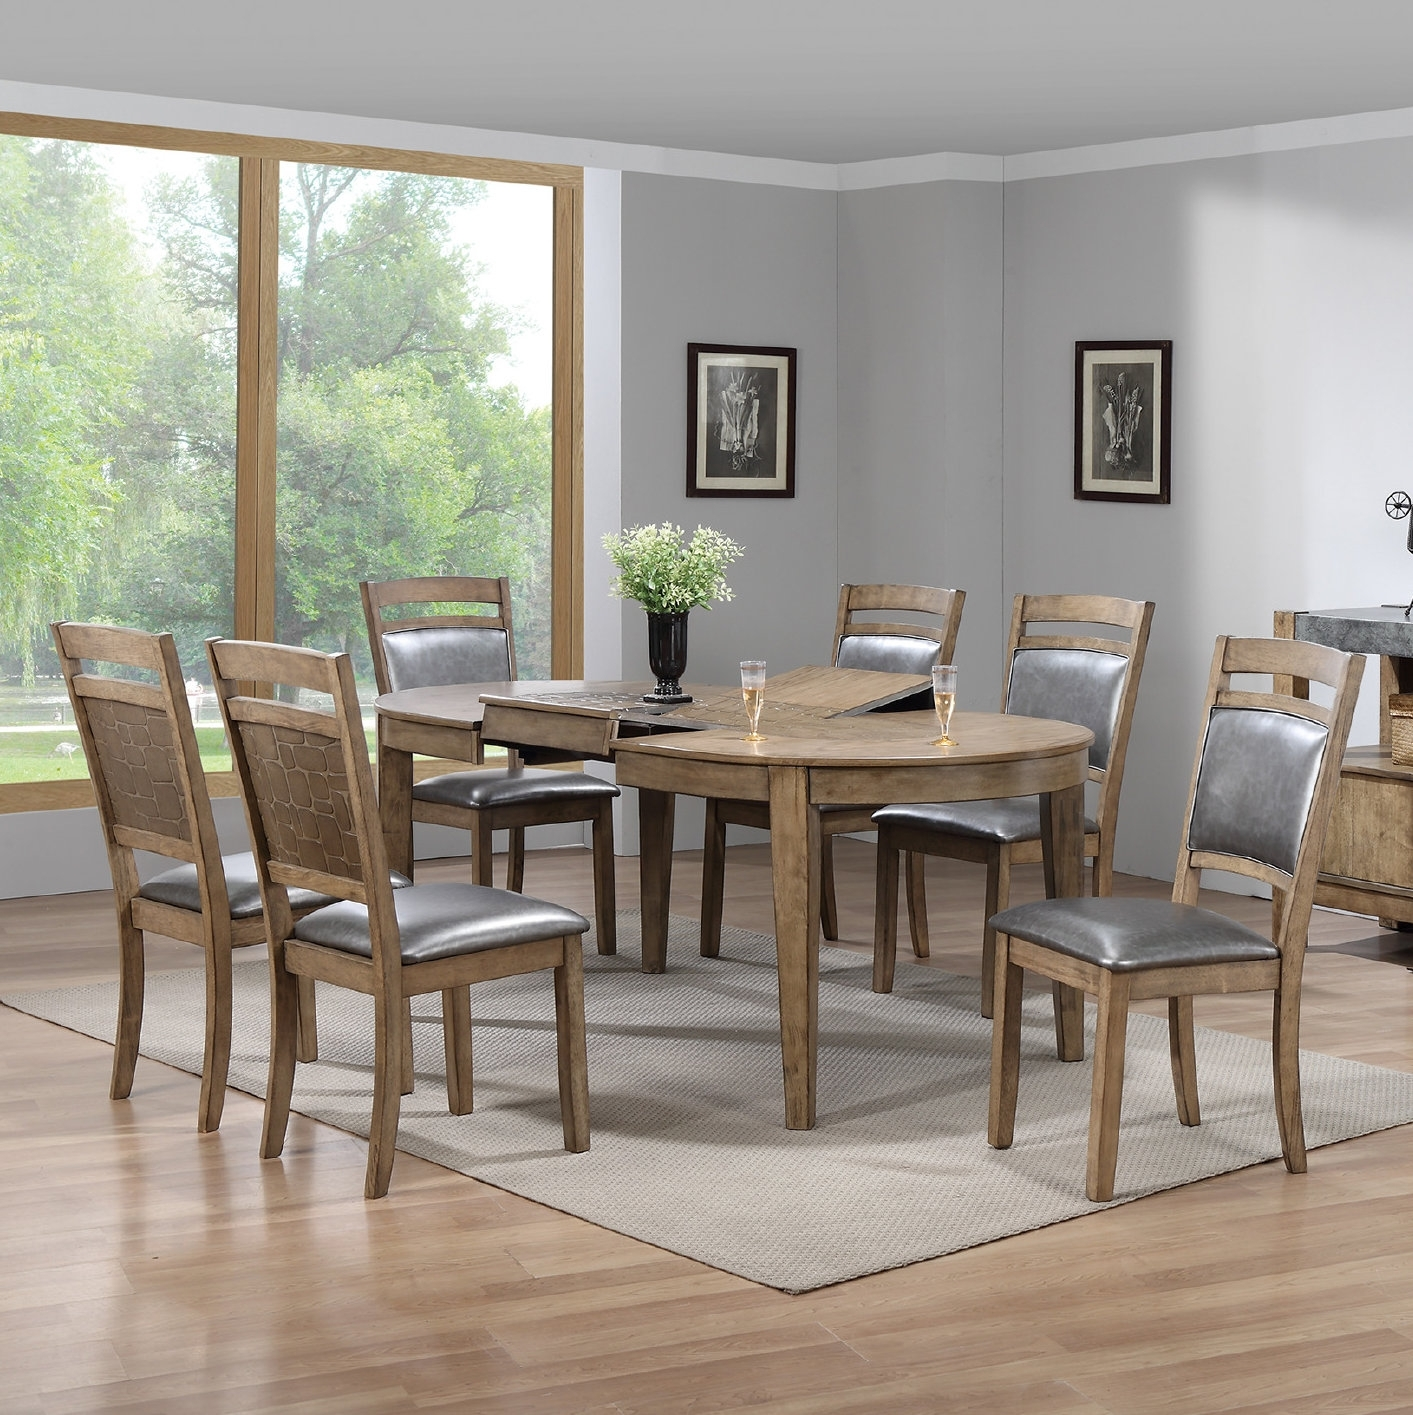 Gracie Oaks Warthen 7 Piece Dining Set | Wayfair Regarding 2018 Caira 7 Piece Rectangular Dining Sets With Upholstered Side Chairs (View 10 of 20)